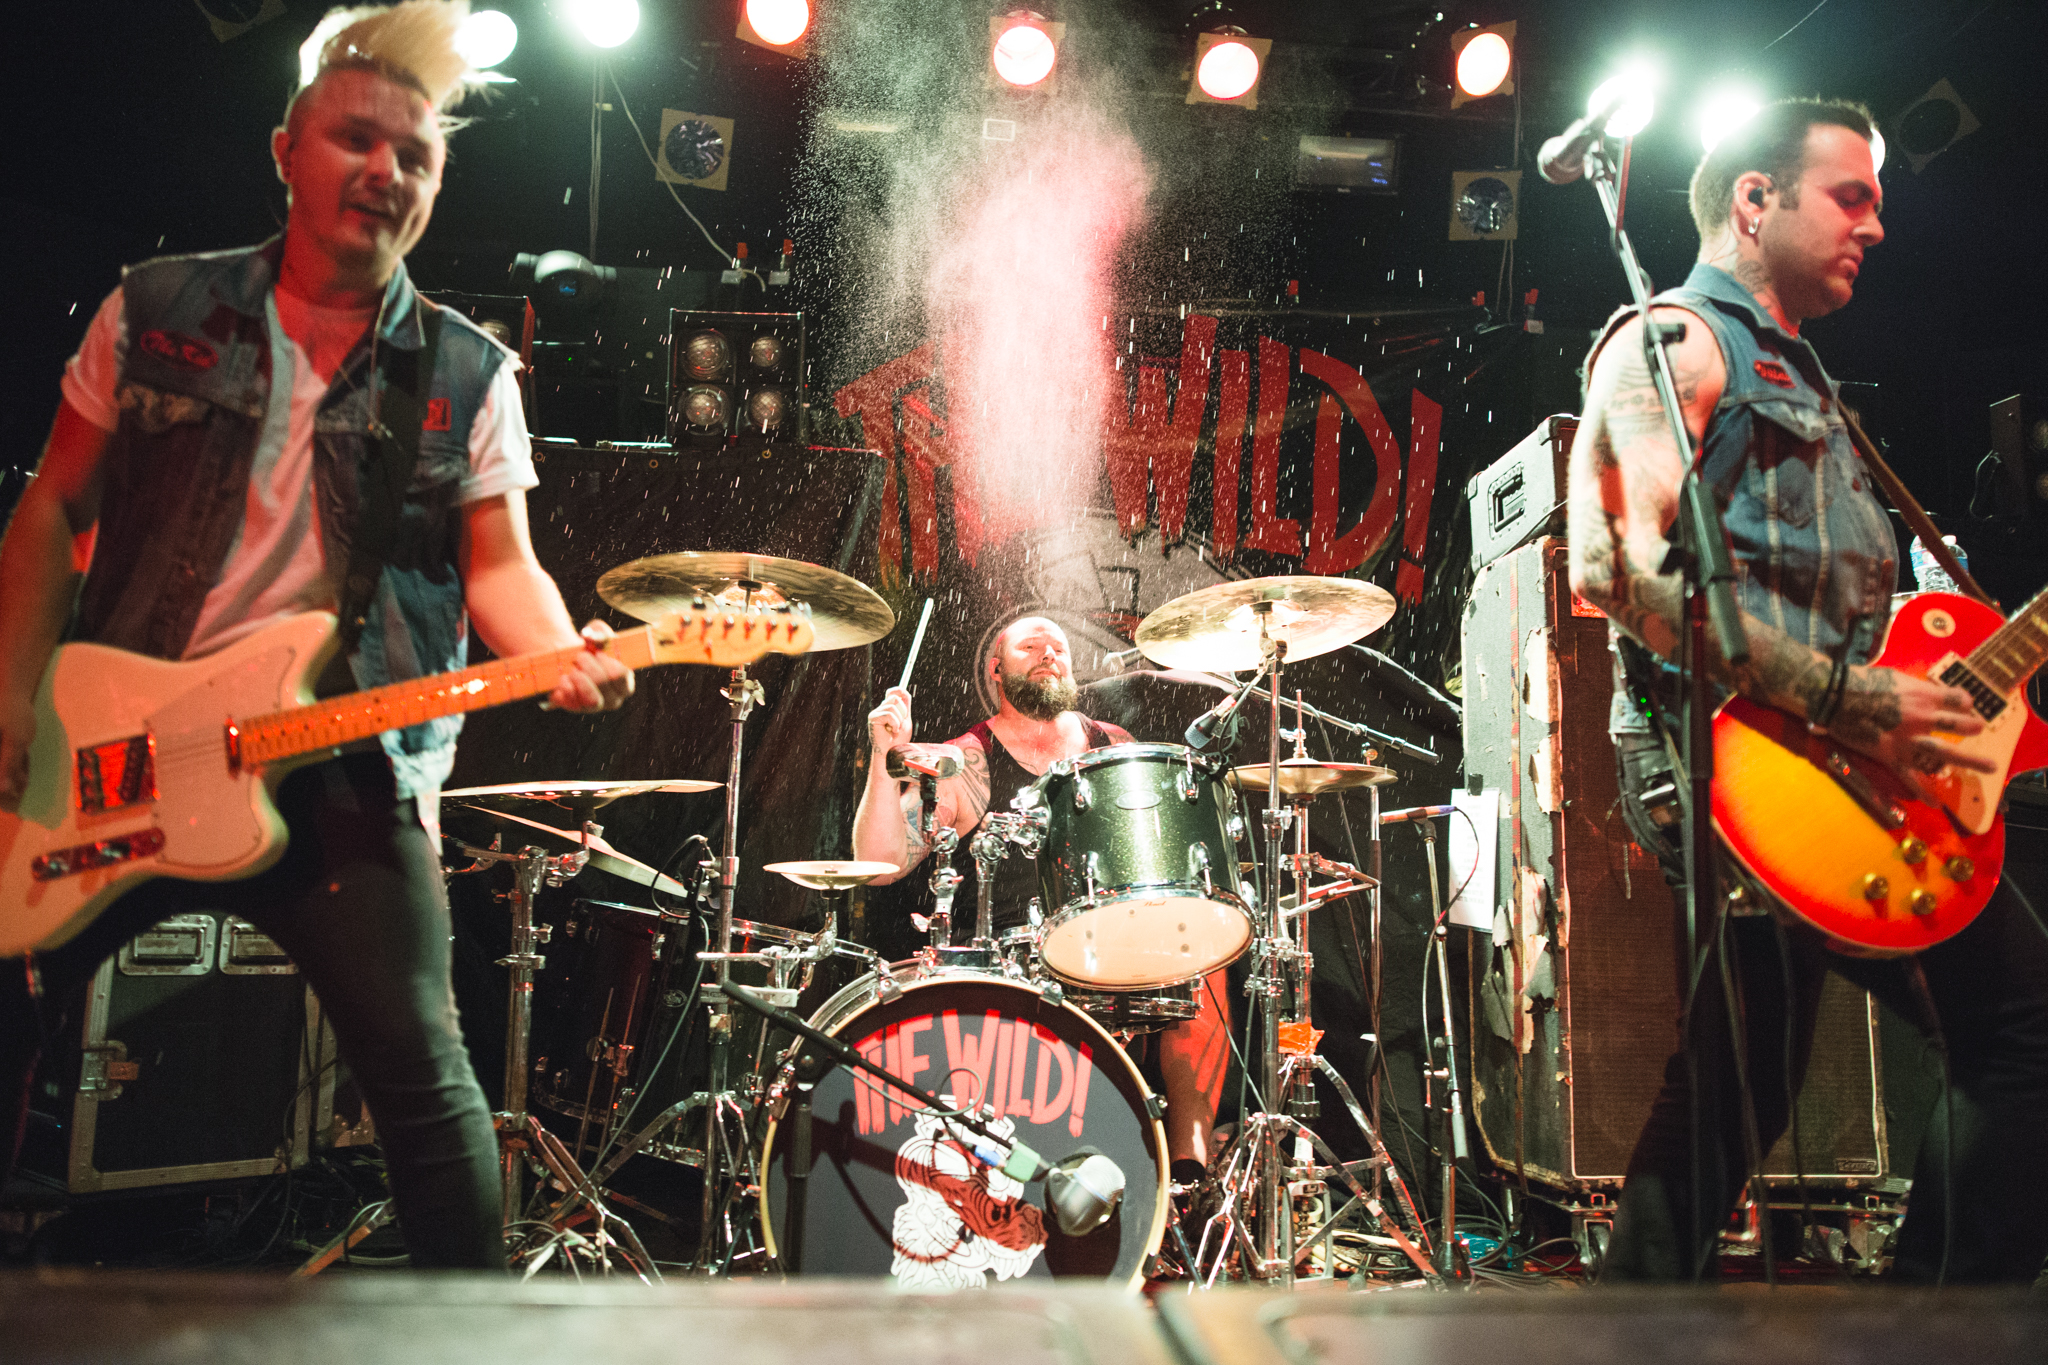 The Wild - Photo by Lindsey Blane